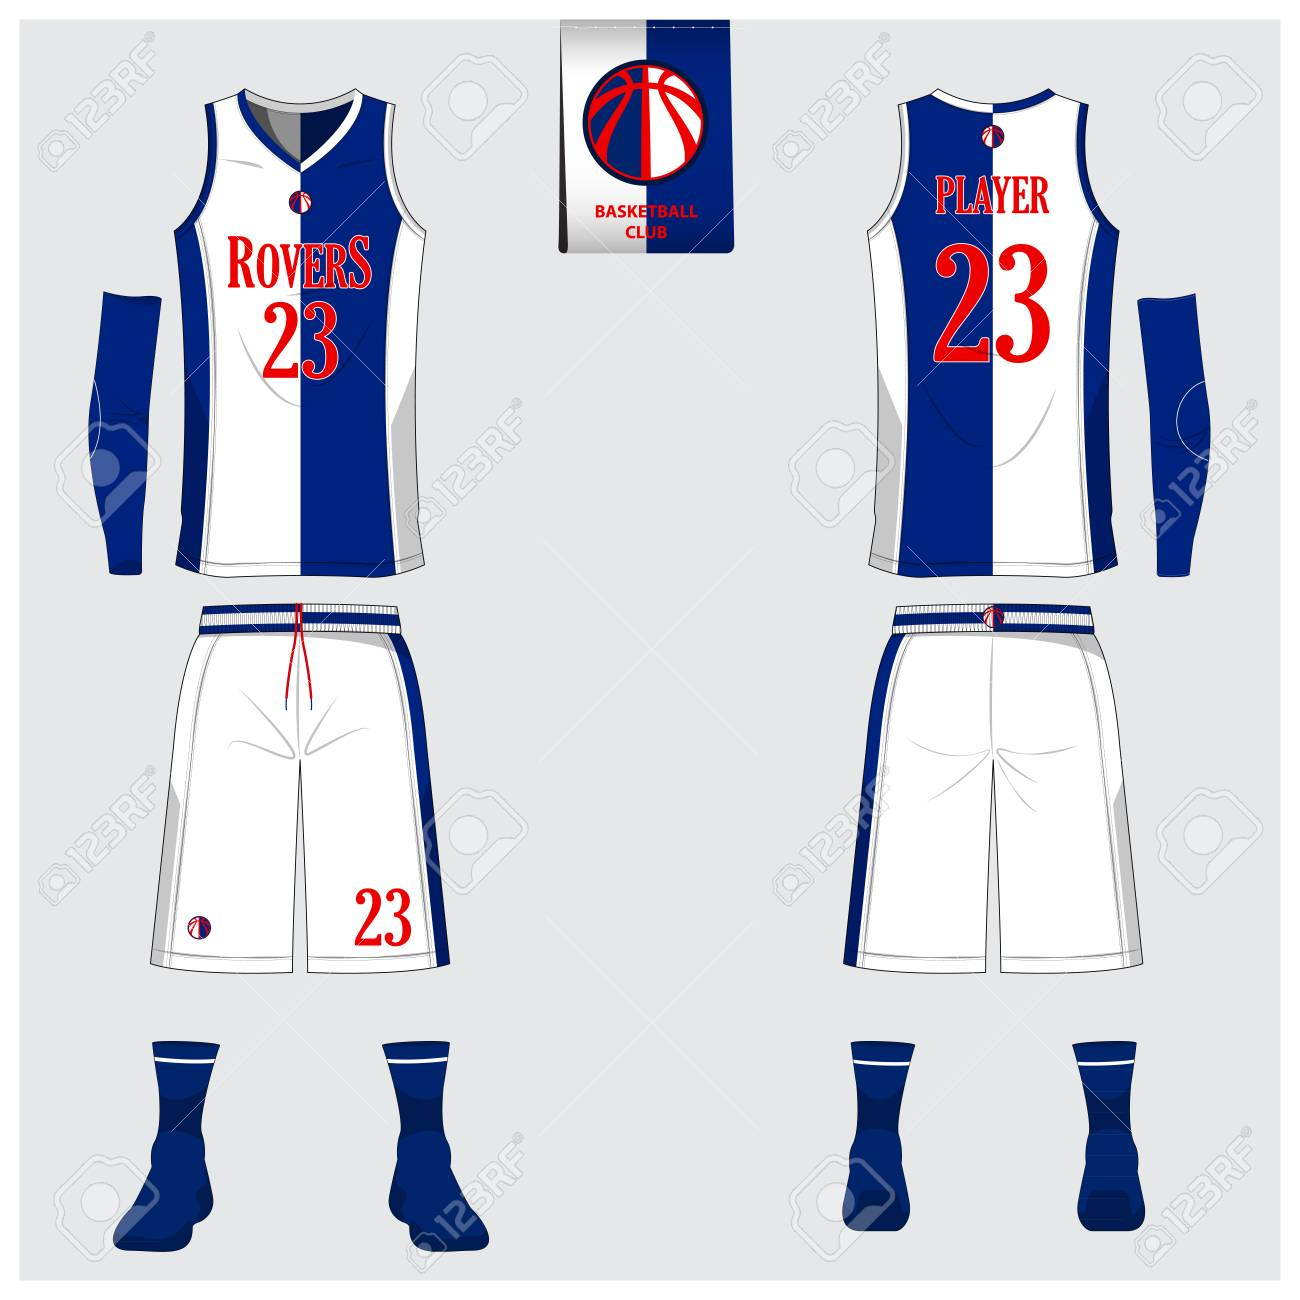 Basketball Uniform Or Jersey Shorts Socks Template For Basketball